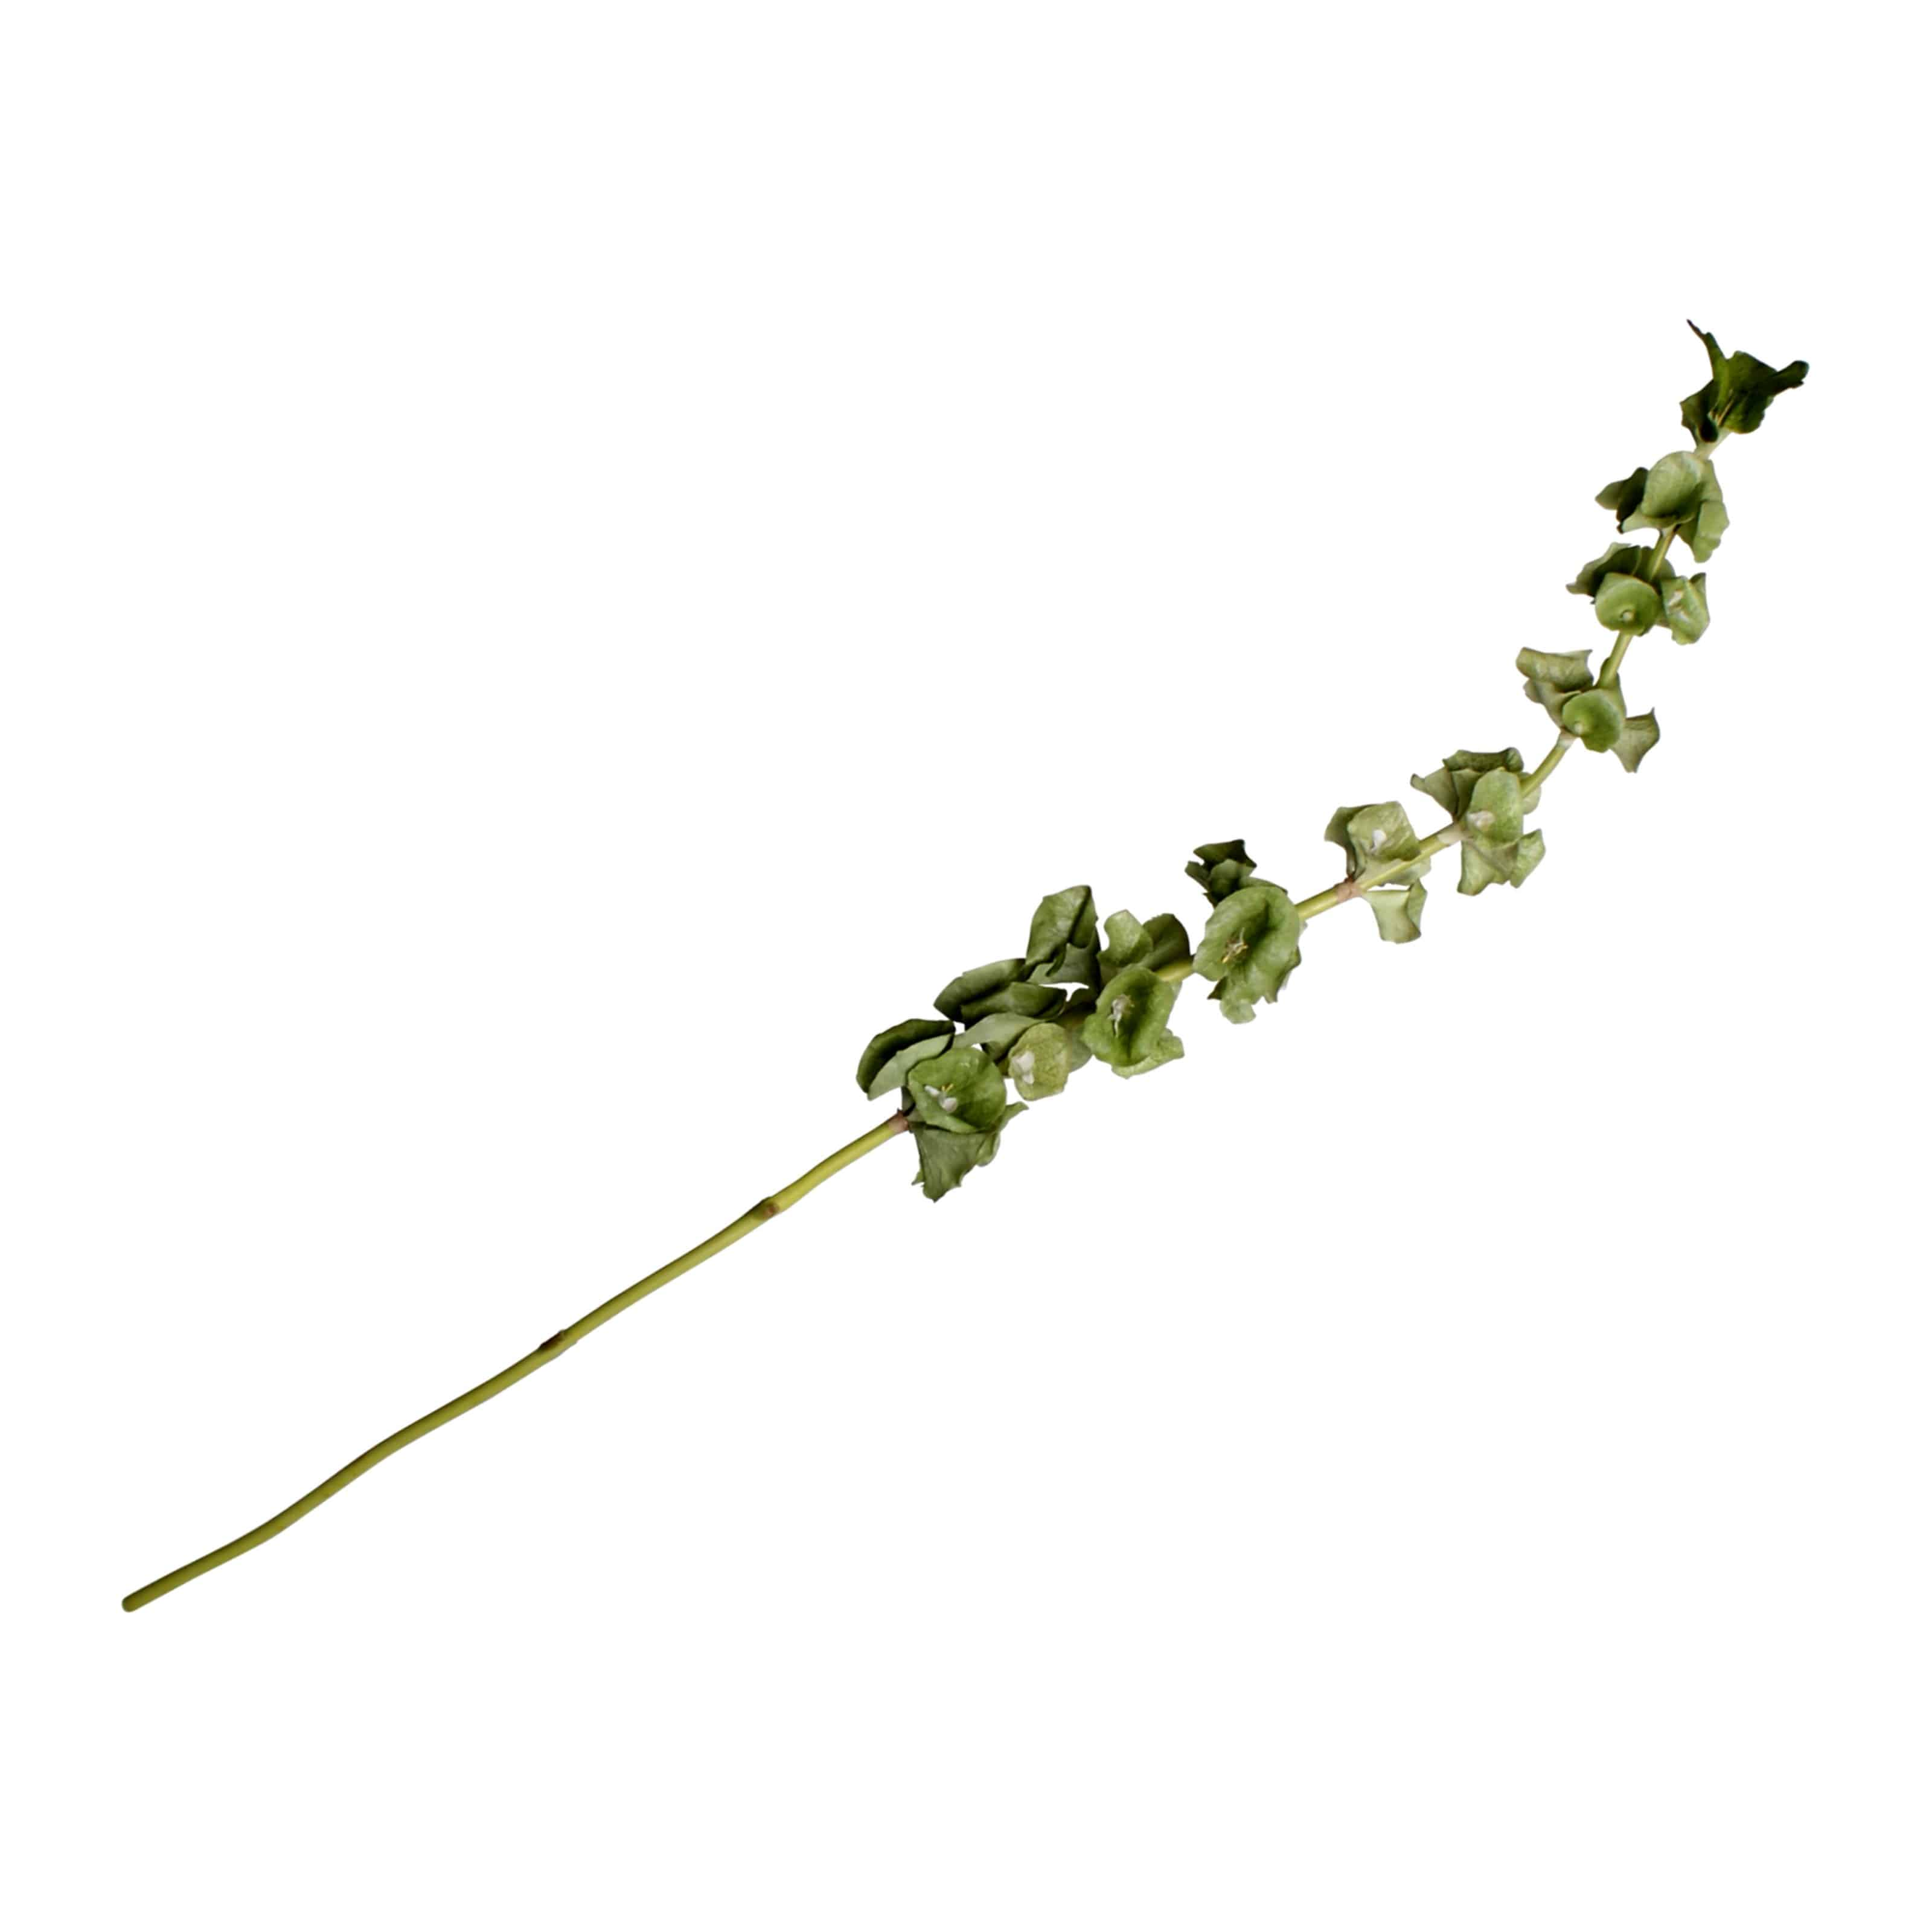 Buy our faux bells of Ireland as the main flower or as incredible foliage for your own creative arrangement. Subtle green shades soften & add life.